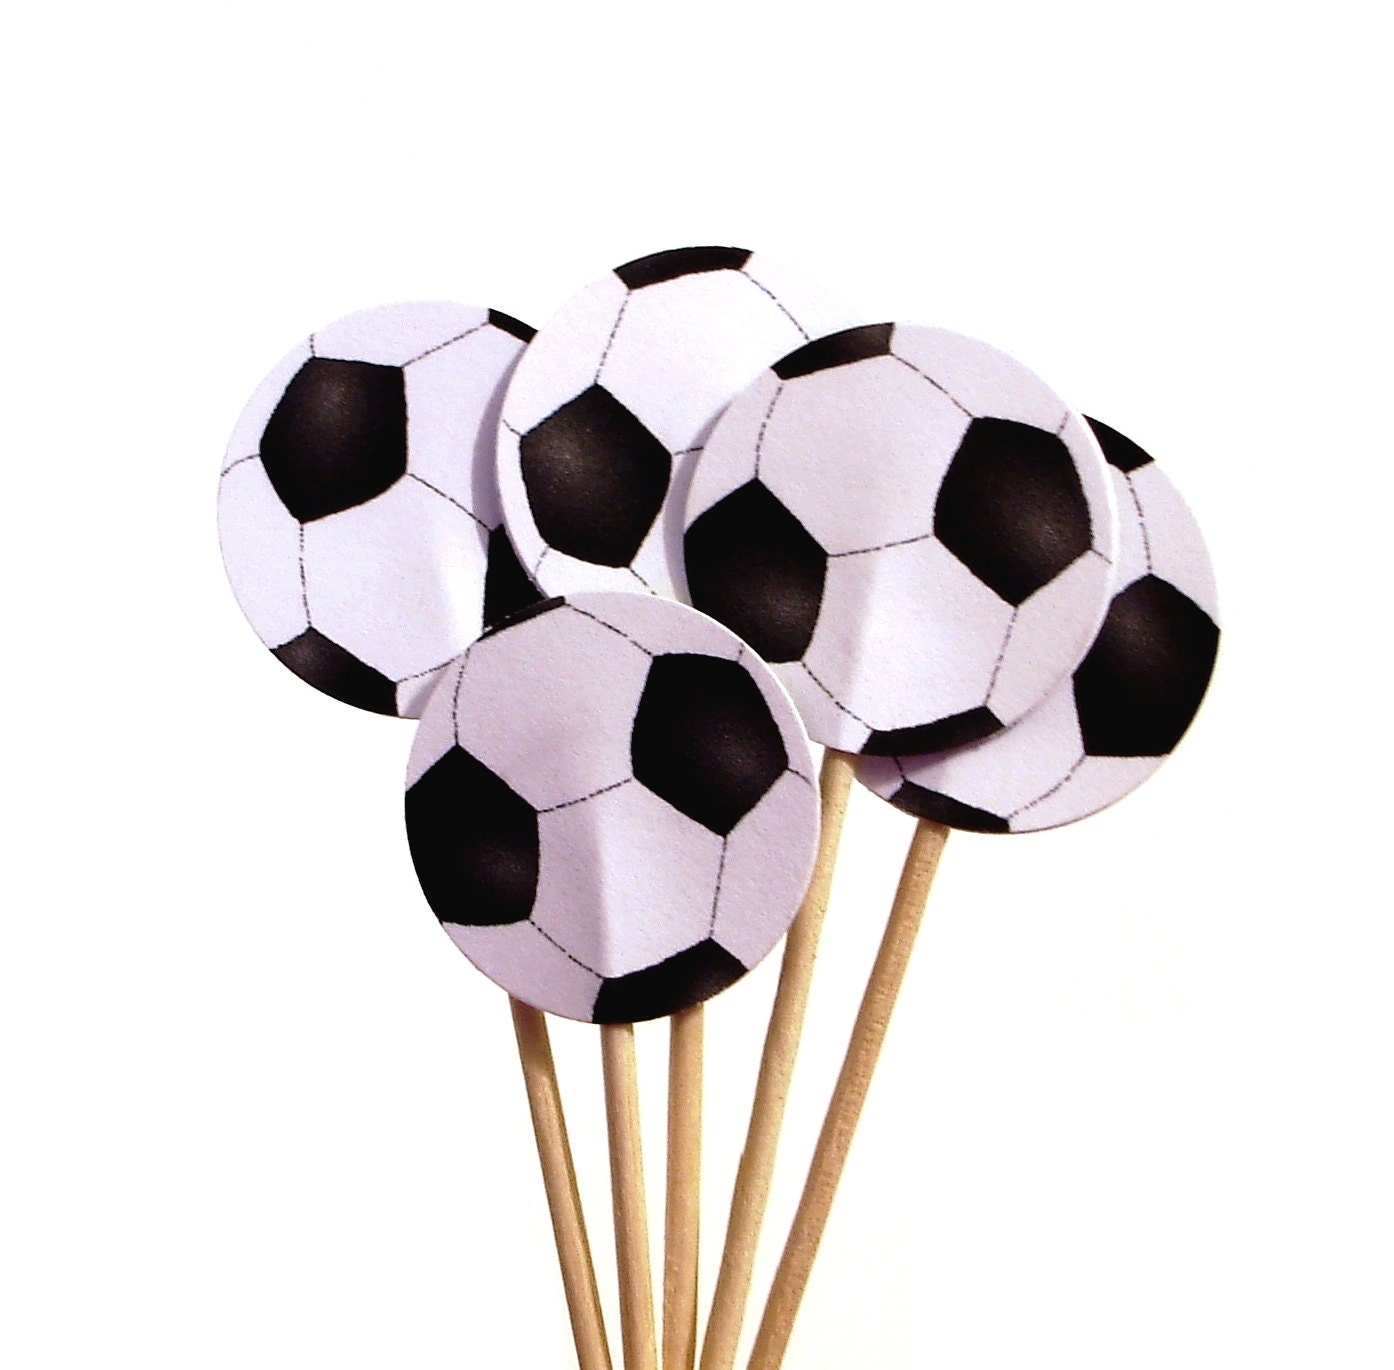 Soccer ball craft ideas - 24 Soccer Ball Party Picks Cupcake Toppers Food Picks Sandwich Picks Toothpicks